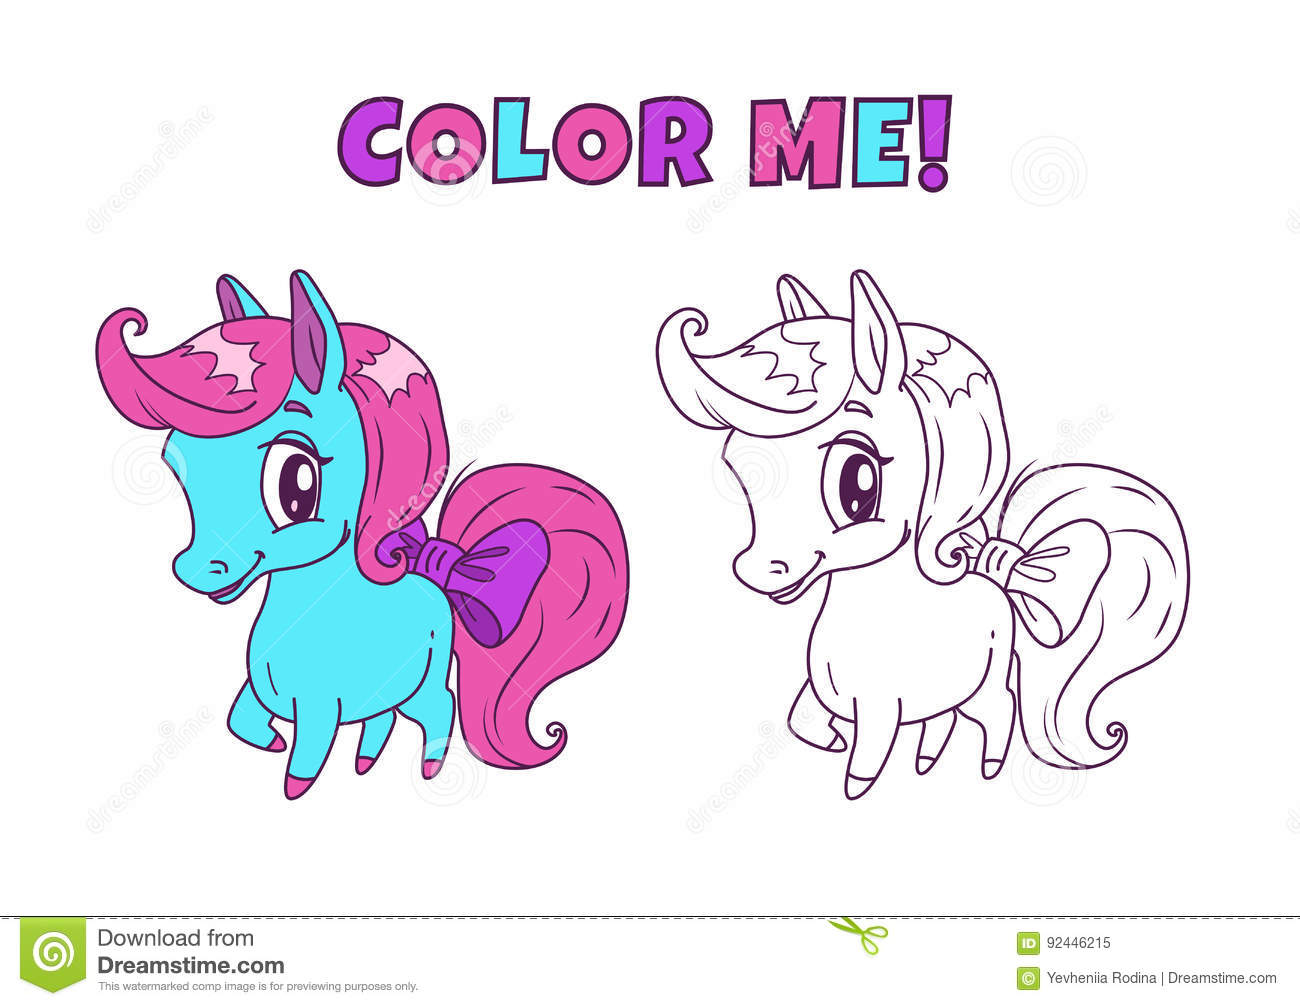 Royalty Free Vector Download Little Cute Horse Illustration For Coloring Book Design Stock